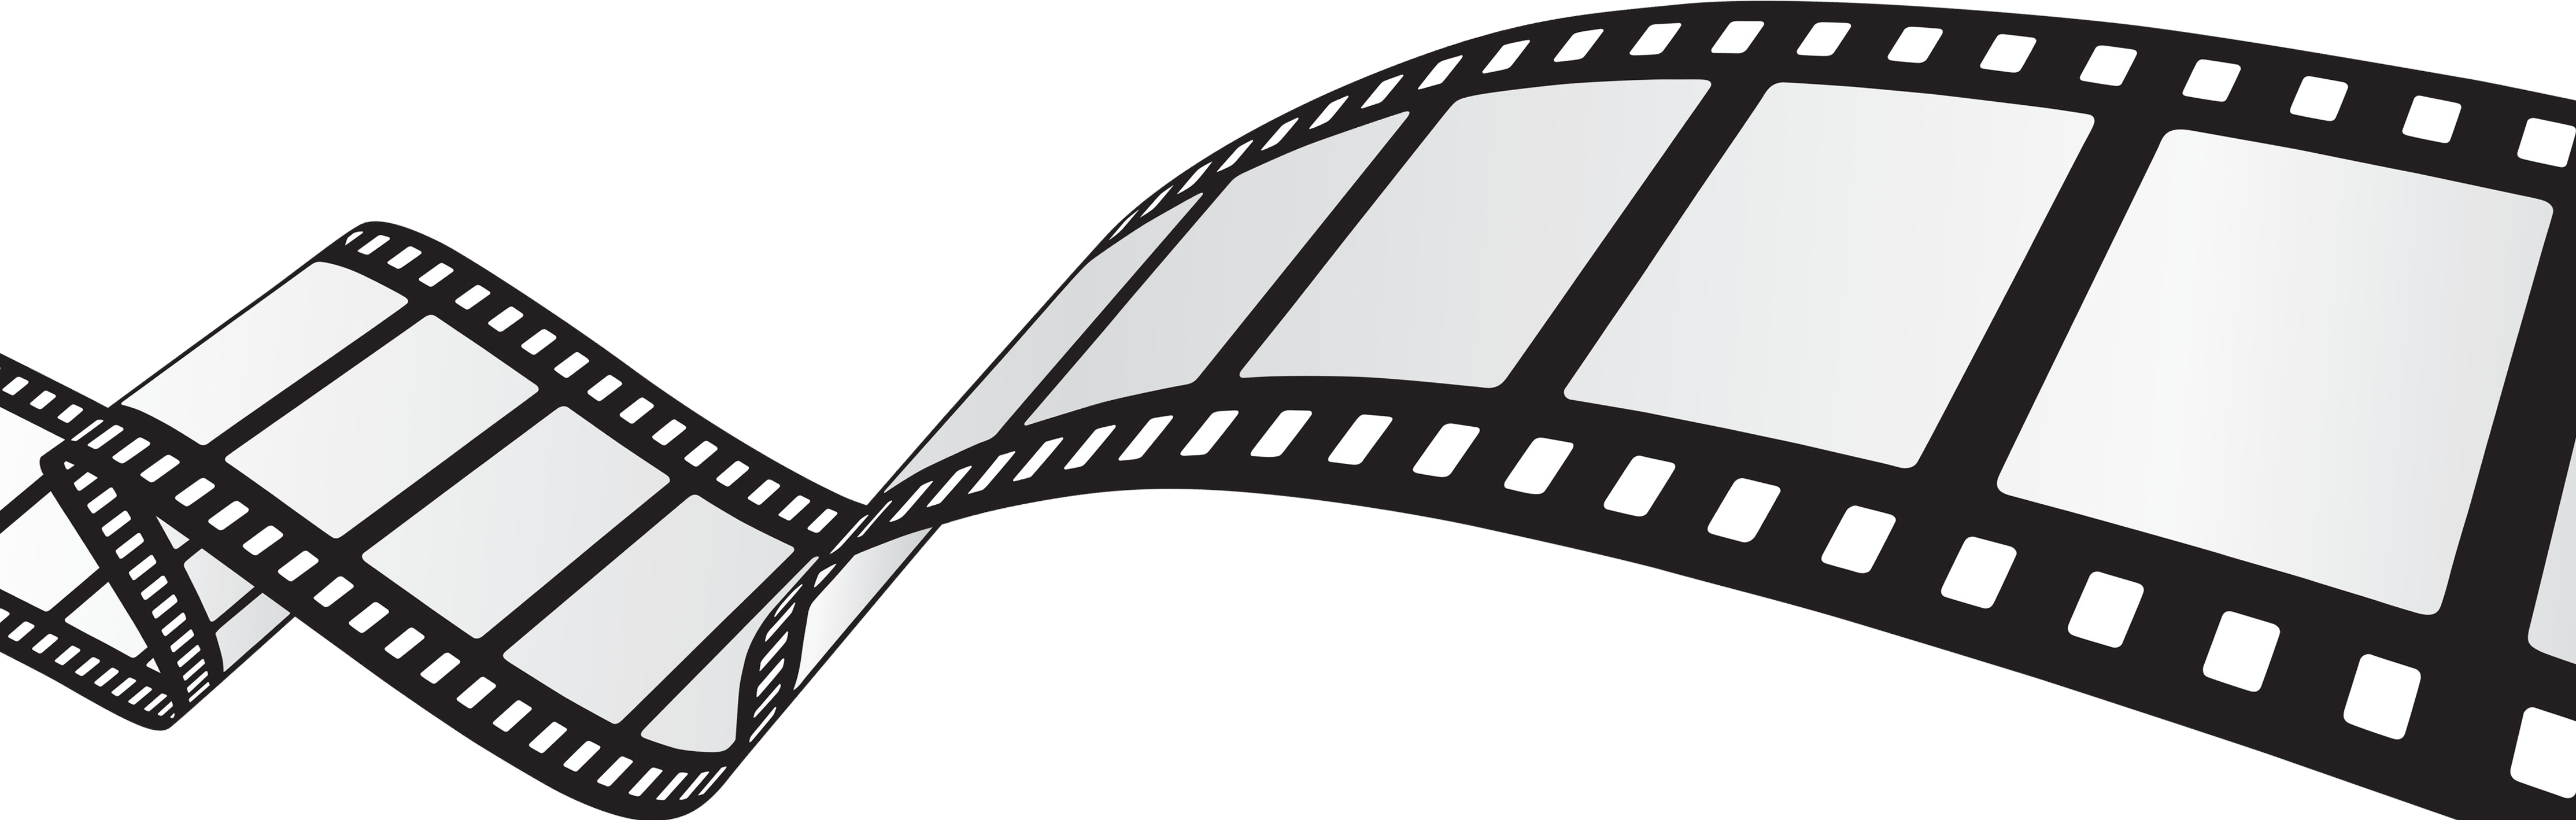 Movies clipart short film.